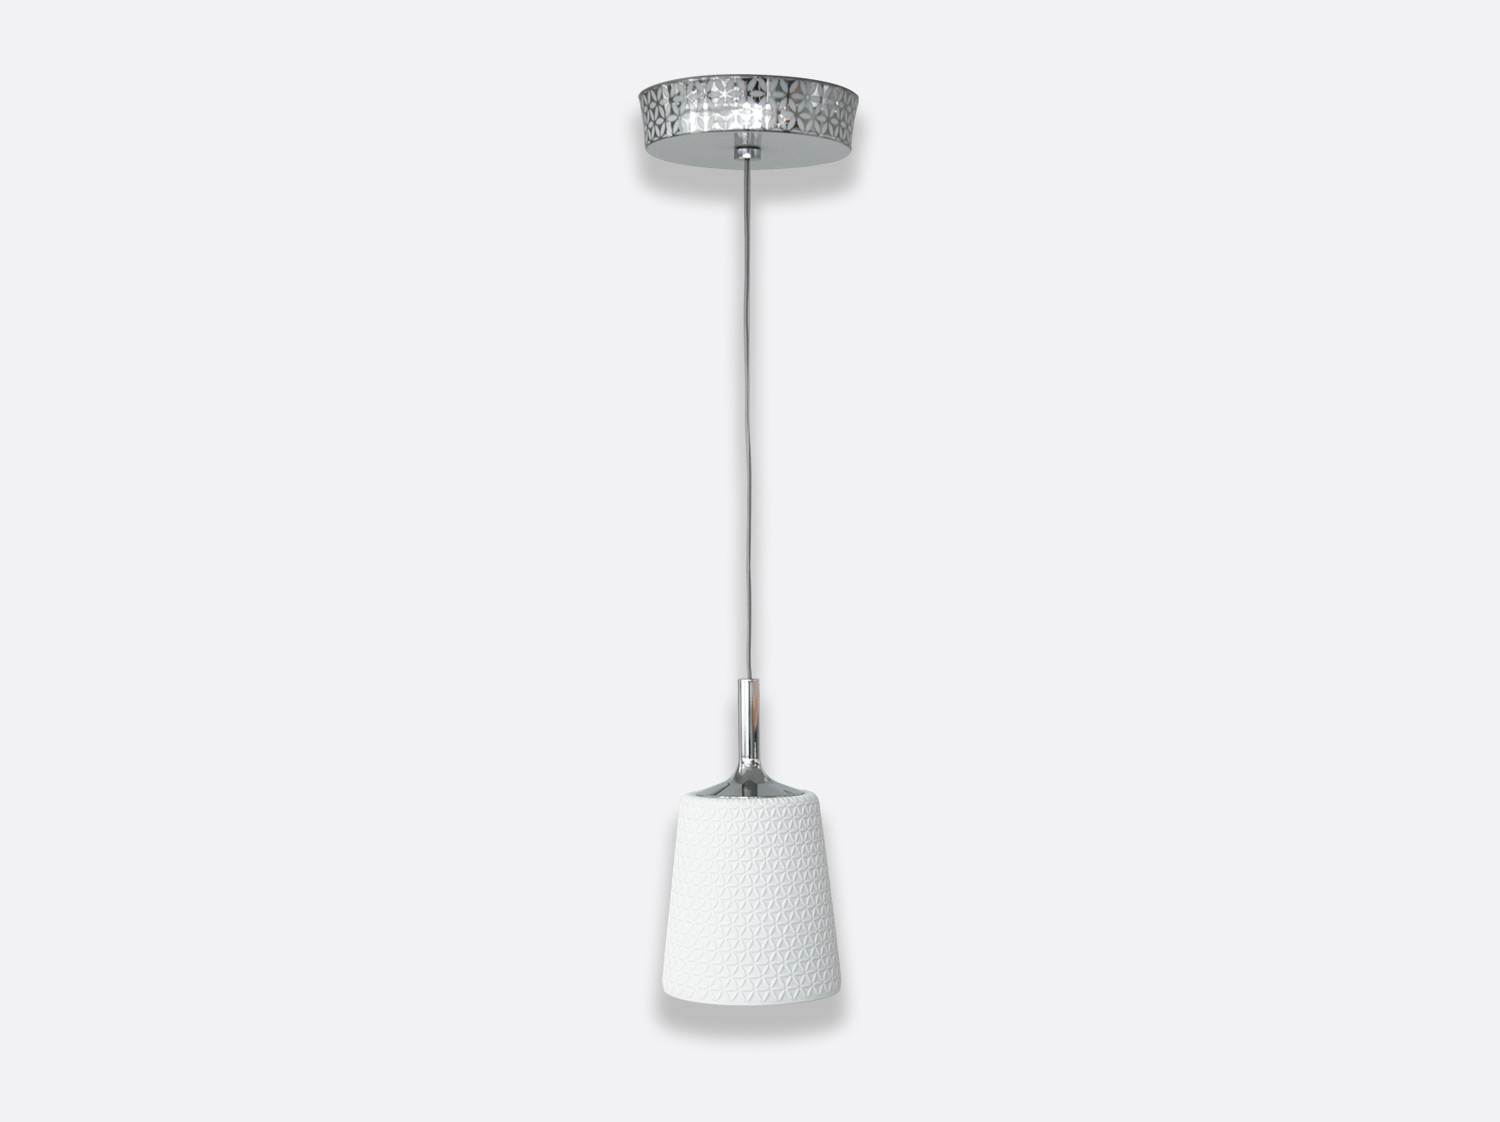 China Pendant light small (D. 13,5 cm H. 23,5 cm) of the collection Marnie | Bernardaud